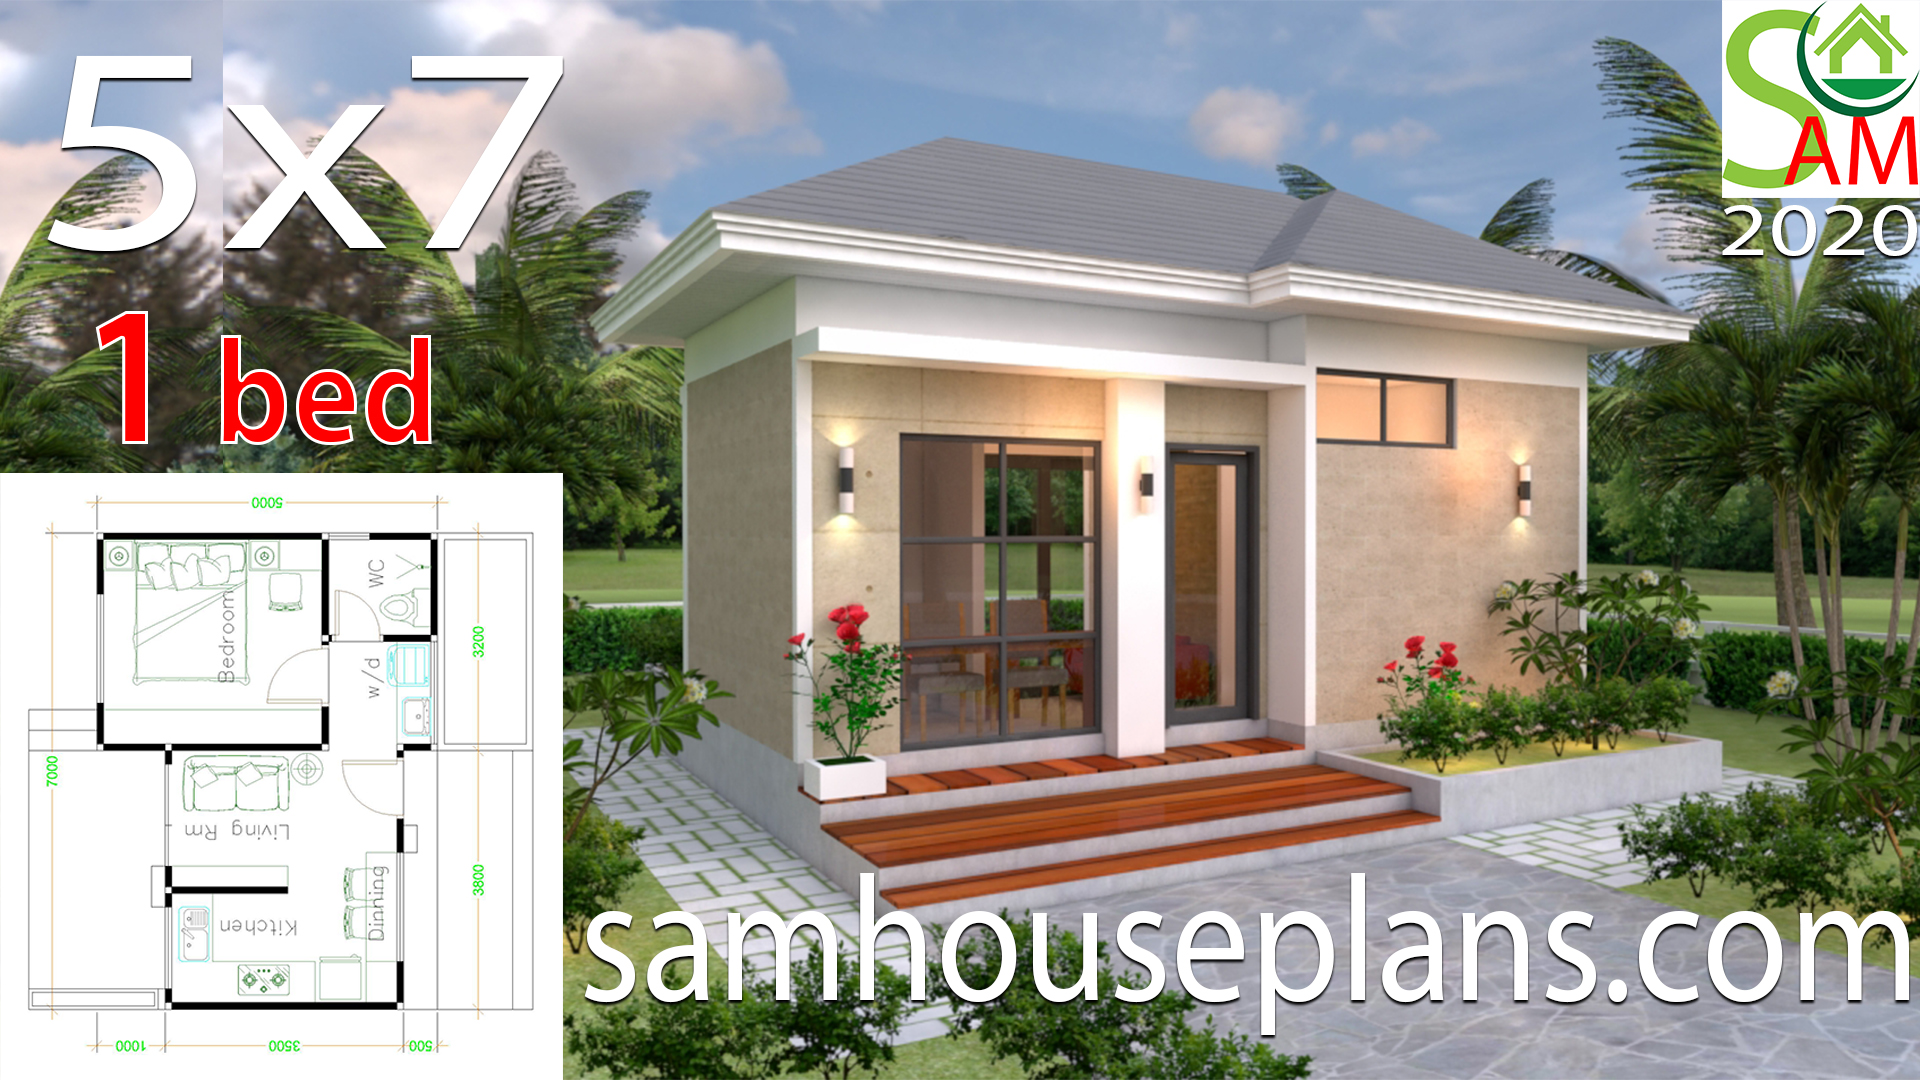 House Design Plans 5x7 With One Bedroom Hip Roof Samhouseplans